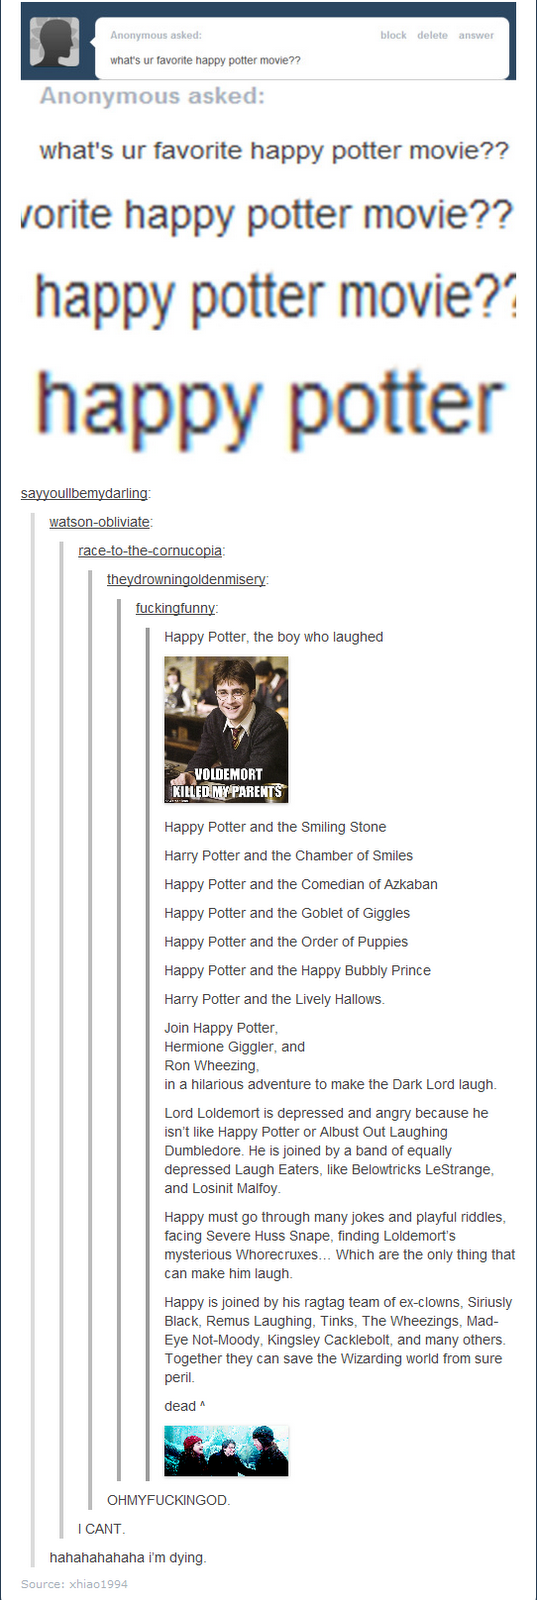 Happy Potter, funny, troll, stupid